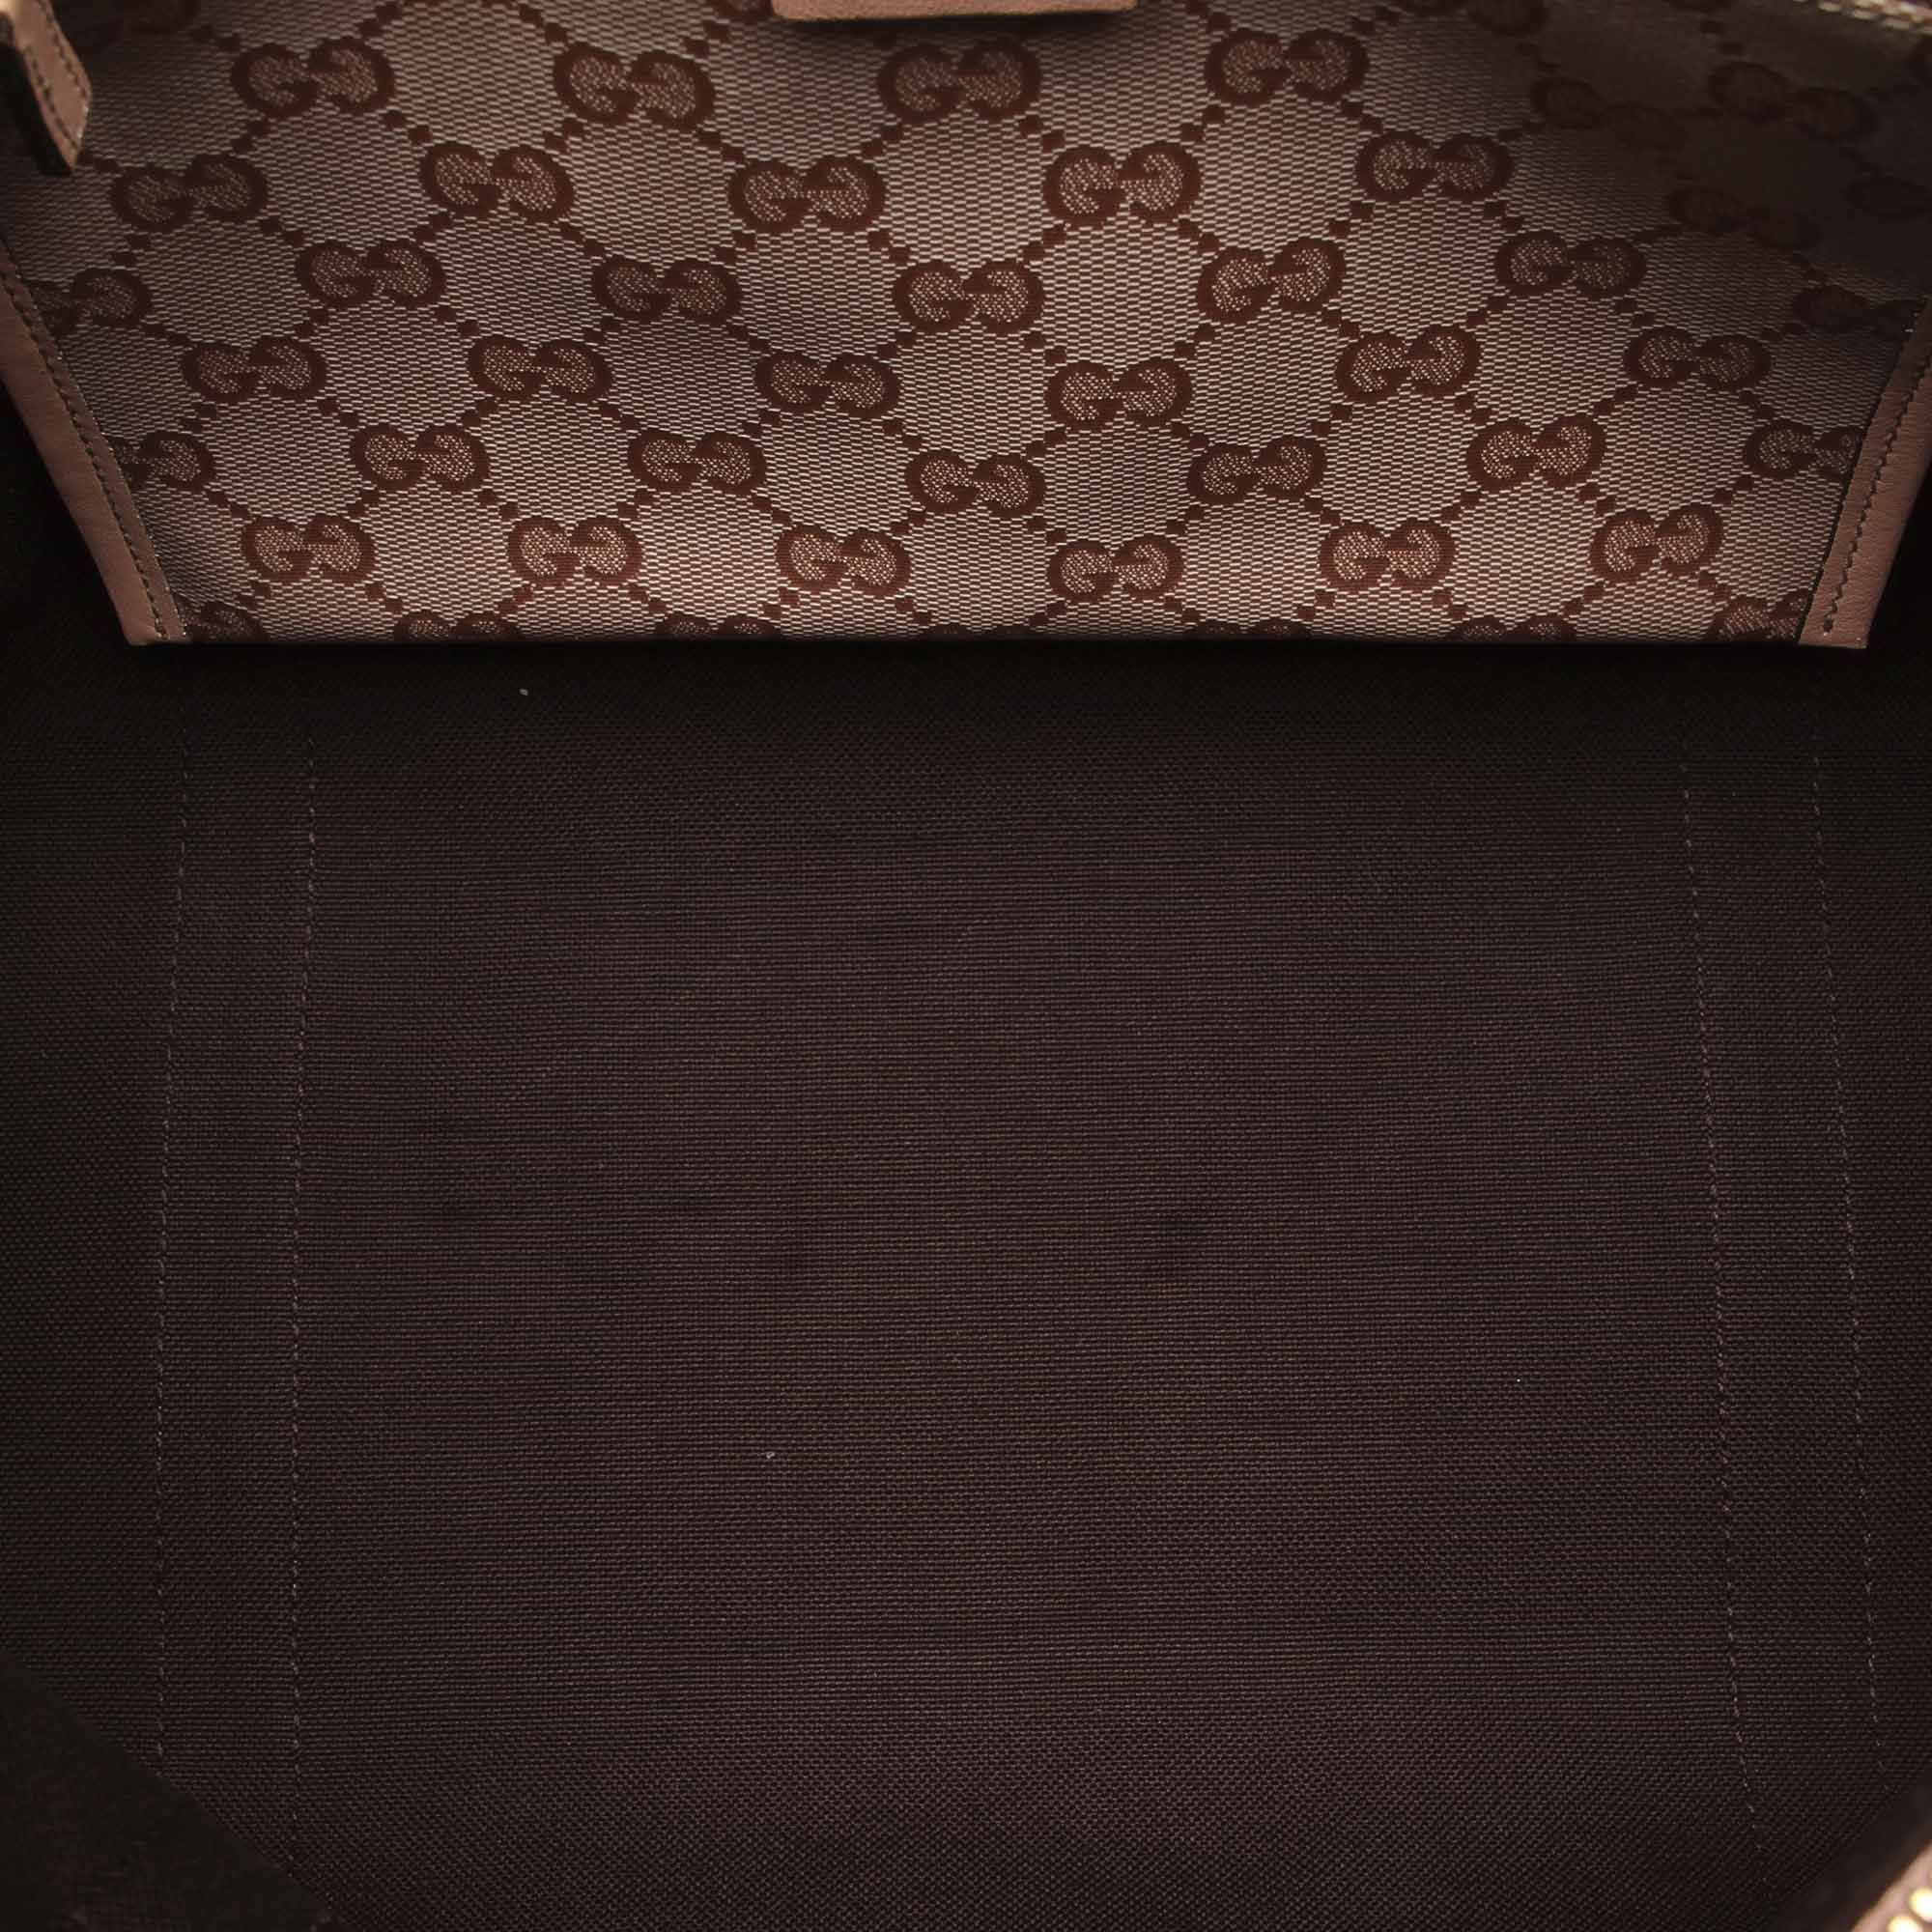 Vintage Gucci GG Crystal Abbey Tote Bag Brown